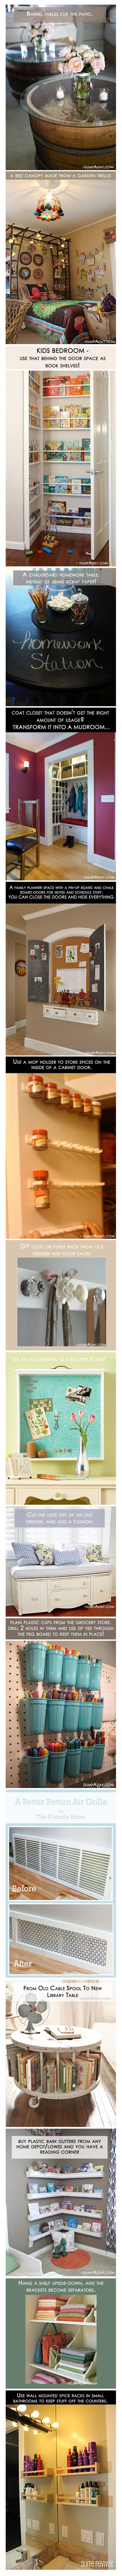 16 Amazing Do It Yourself Home Ideas